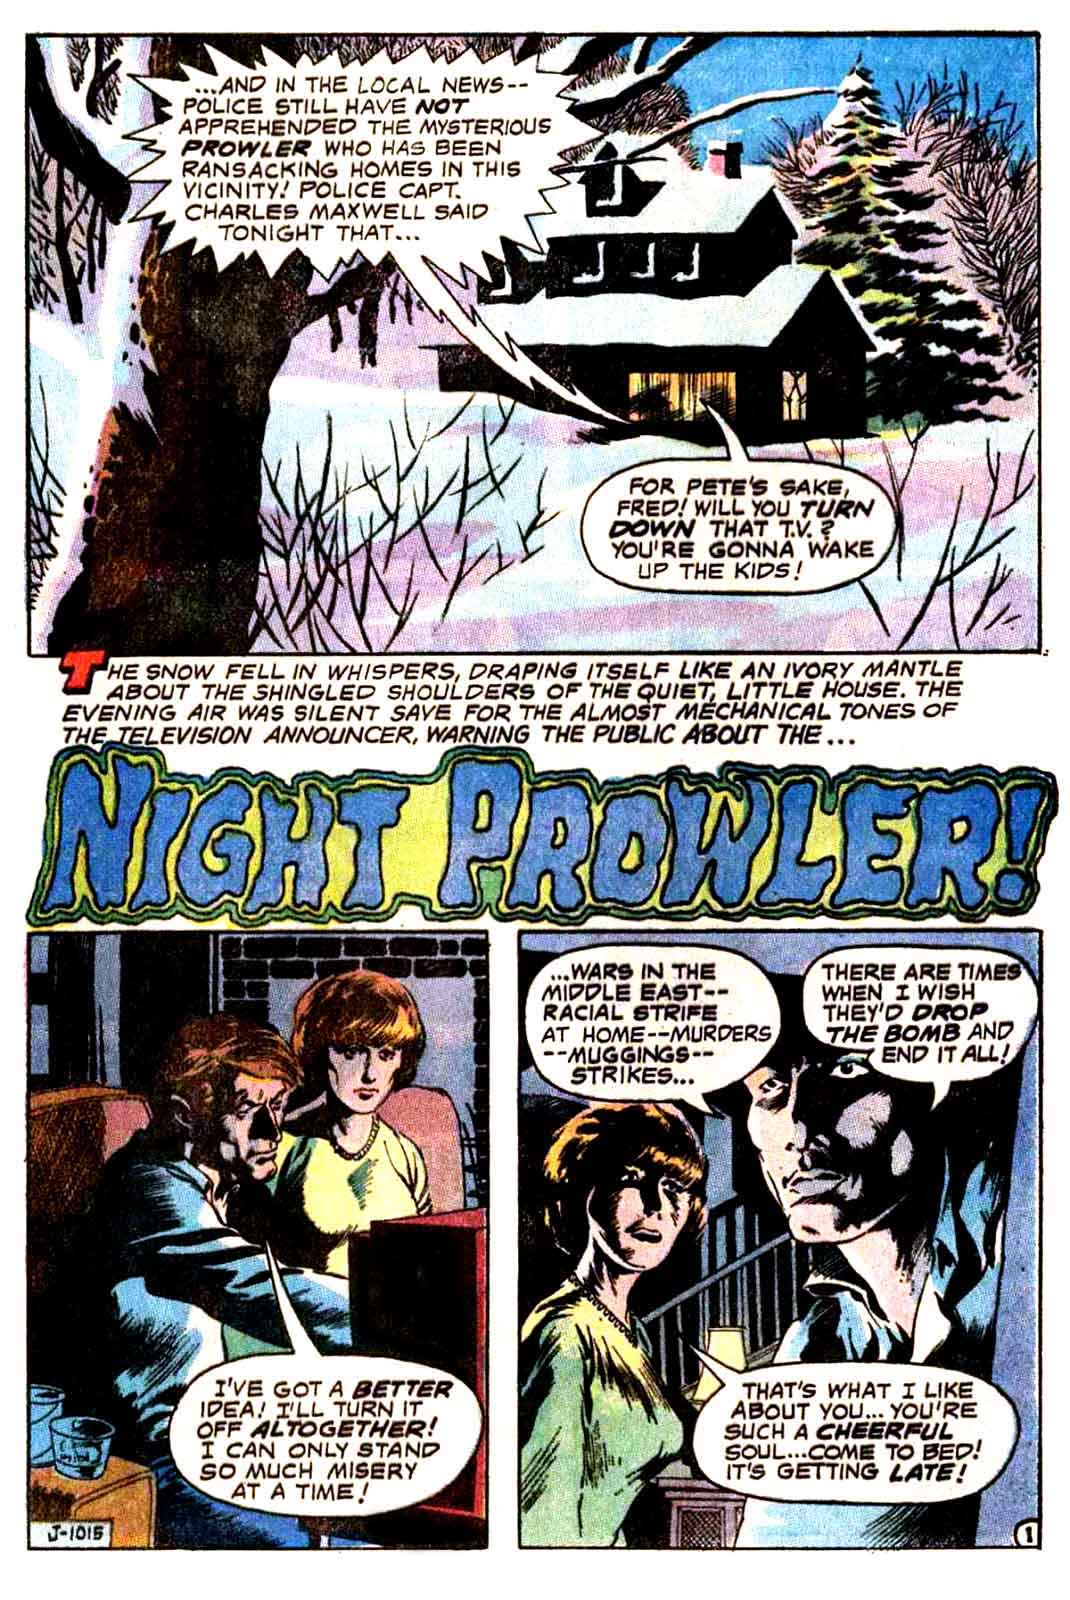 Night Prowler from The House Of Mystery #191 April, 1971